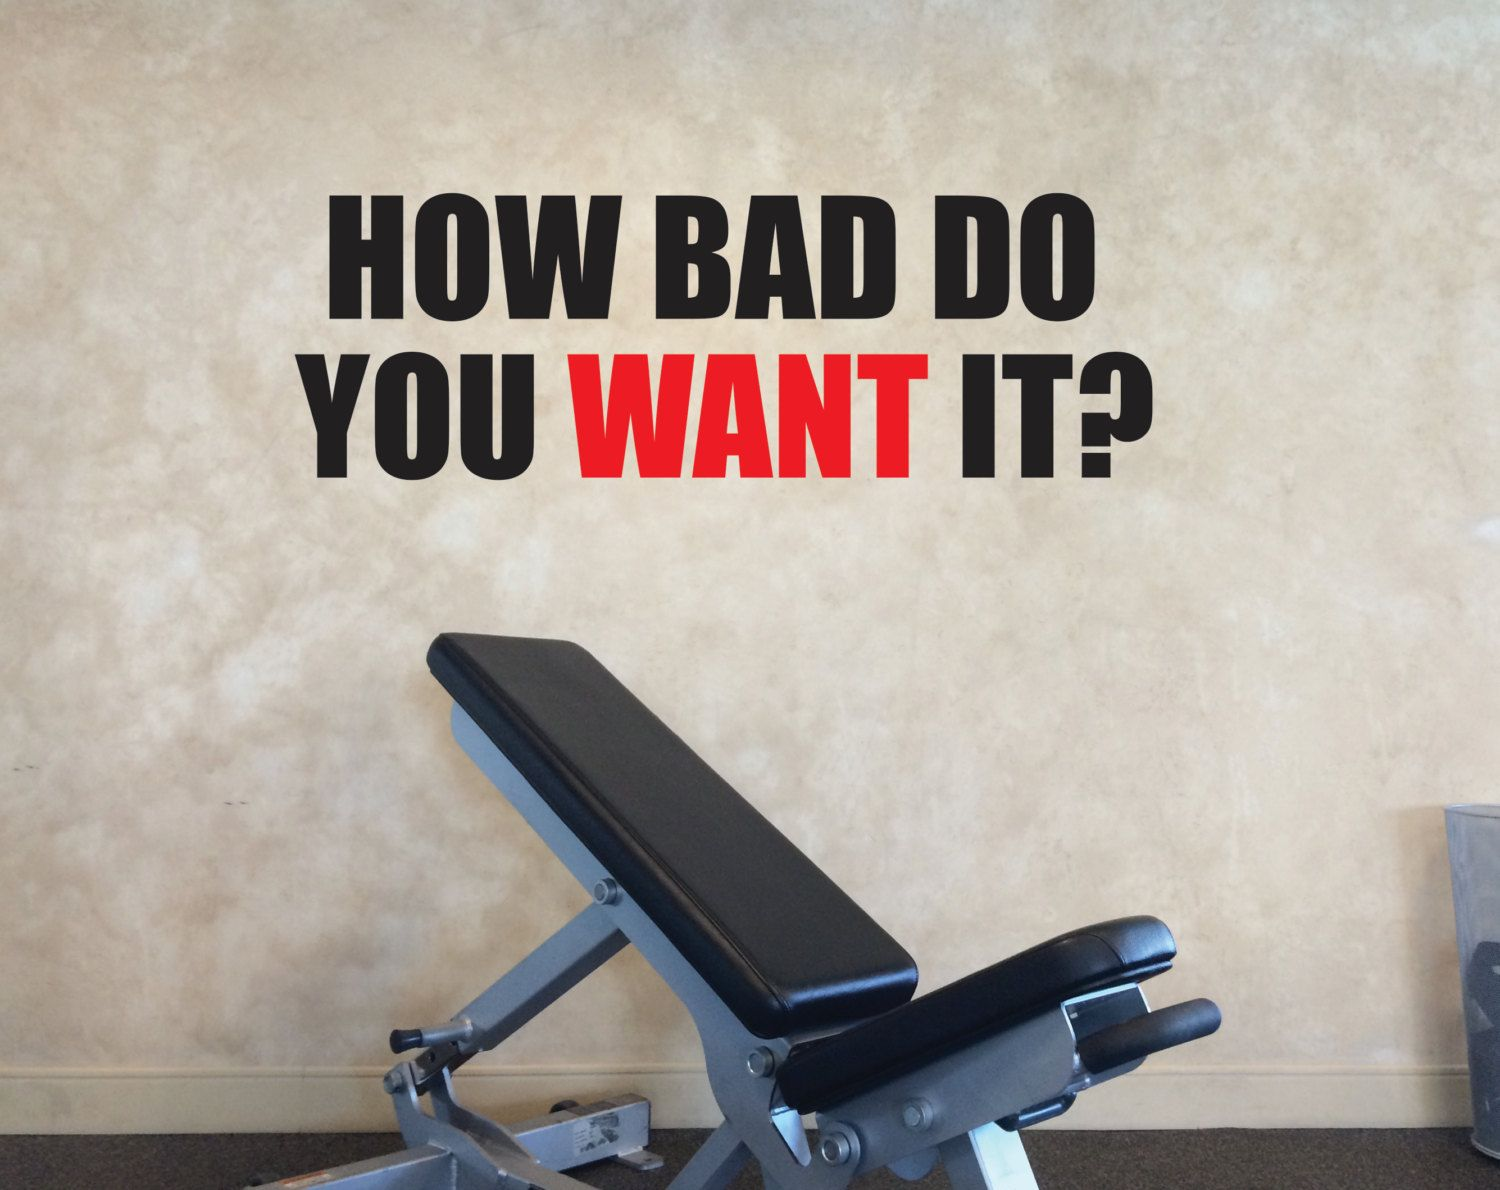 Garage Gym Wall Decor Gym Decal How Bad Do You Want It Fitness Wall Decal Home Gym